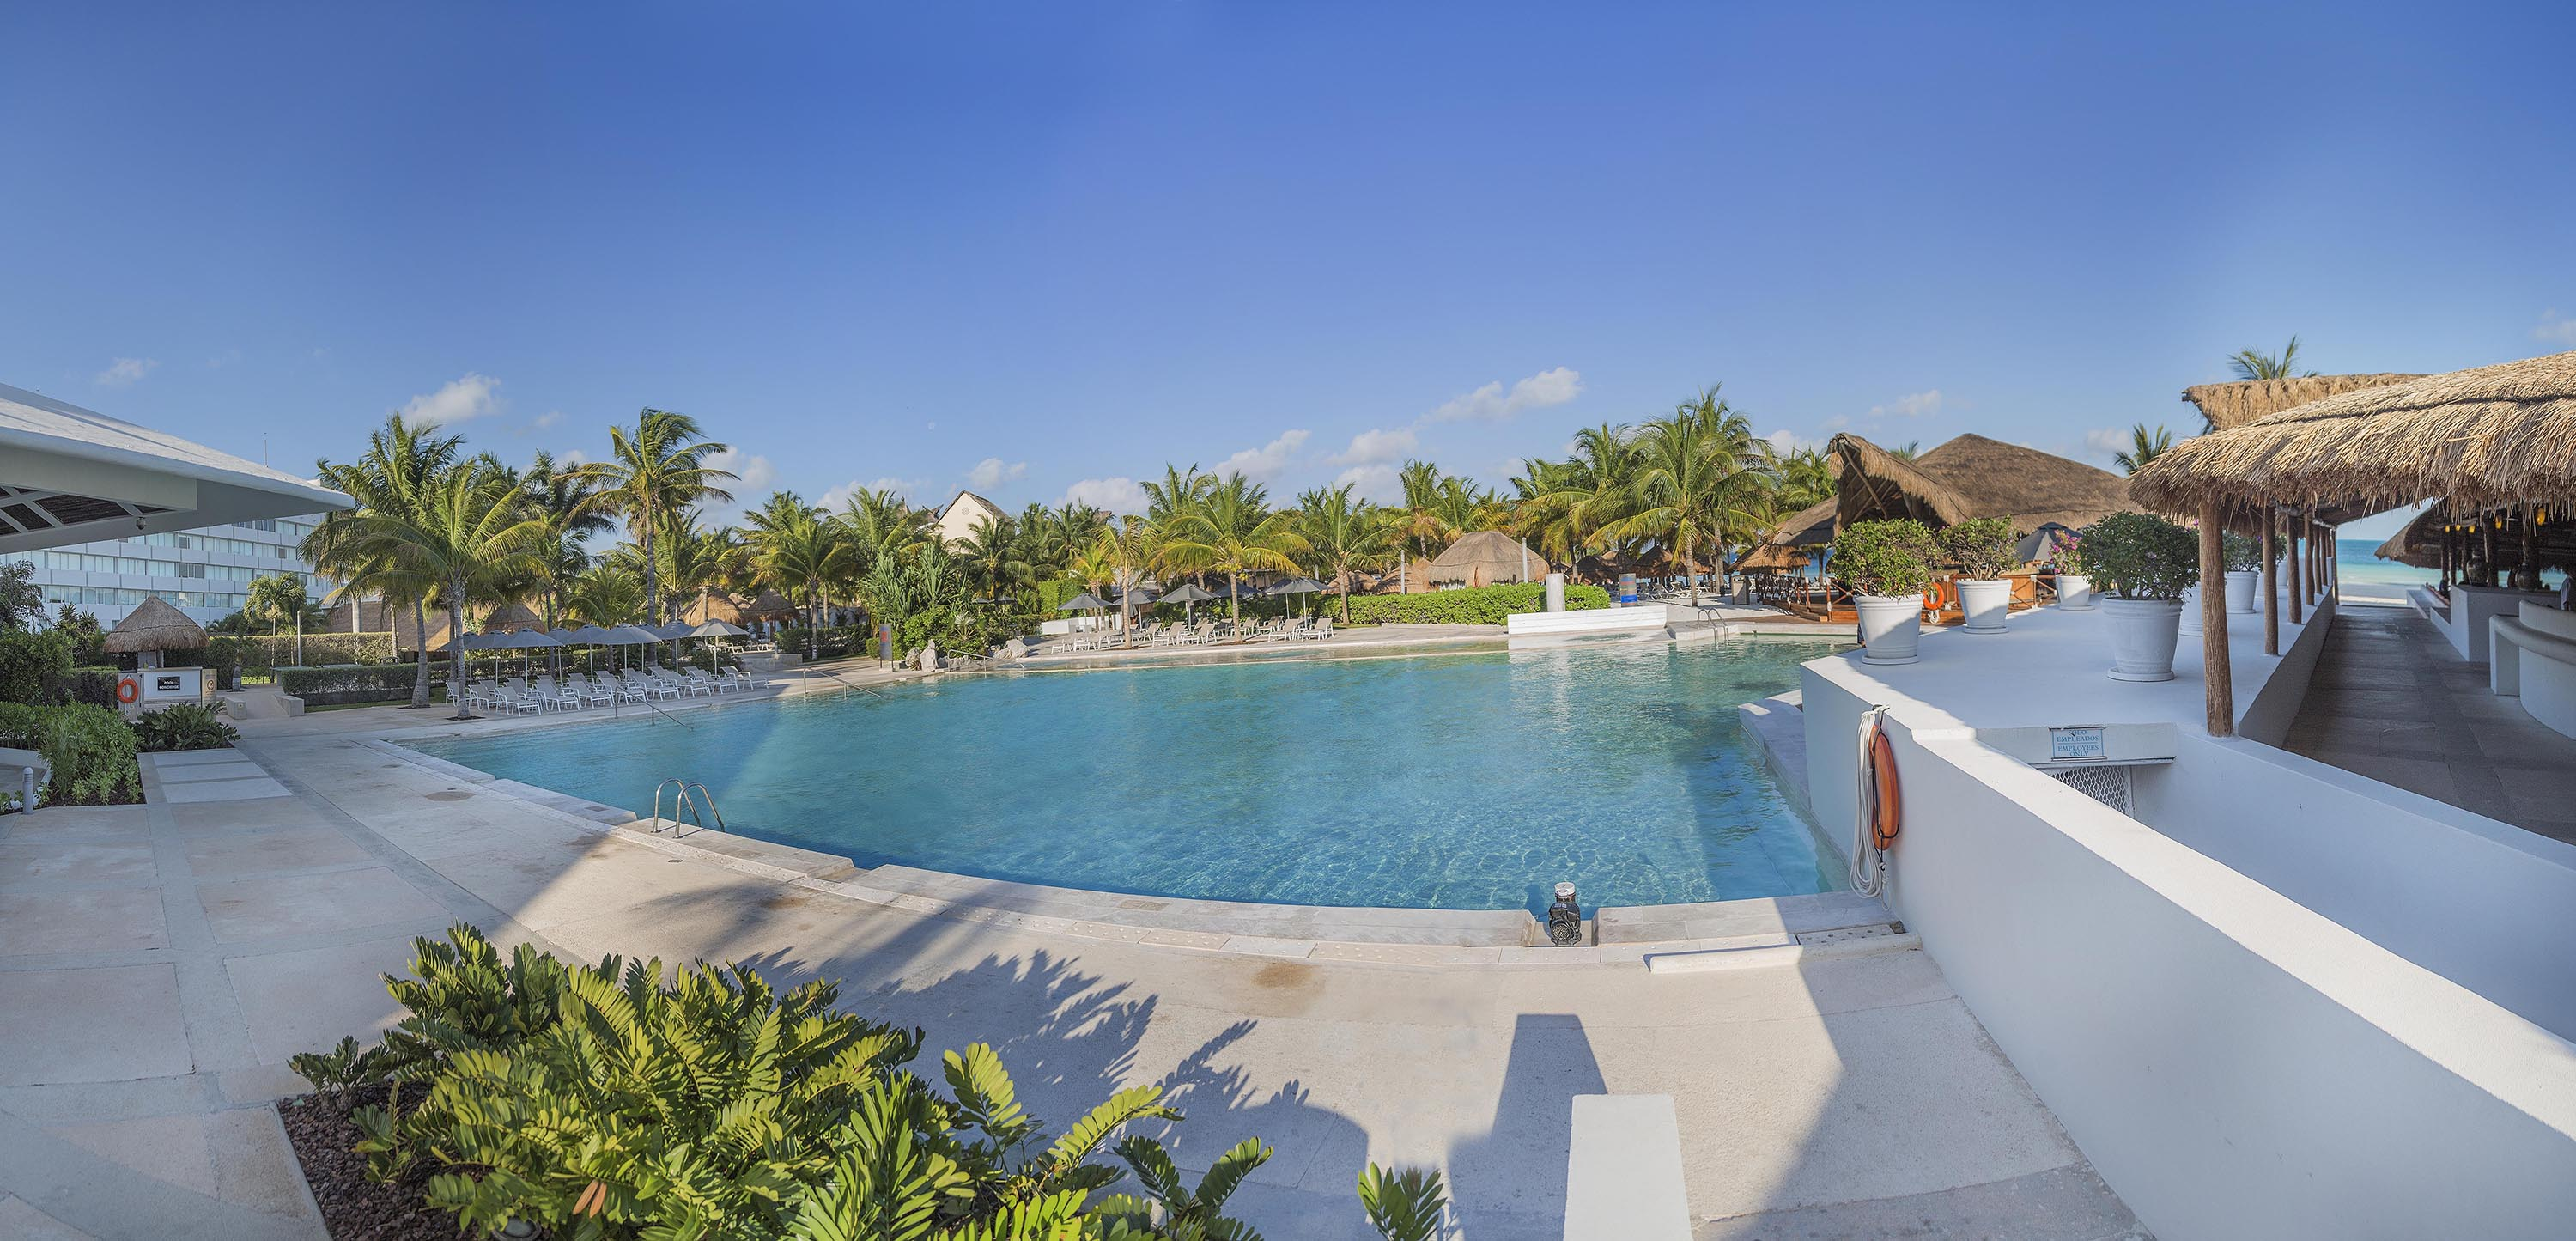 Presidente Cancun Resort's pool area